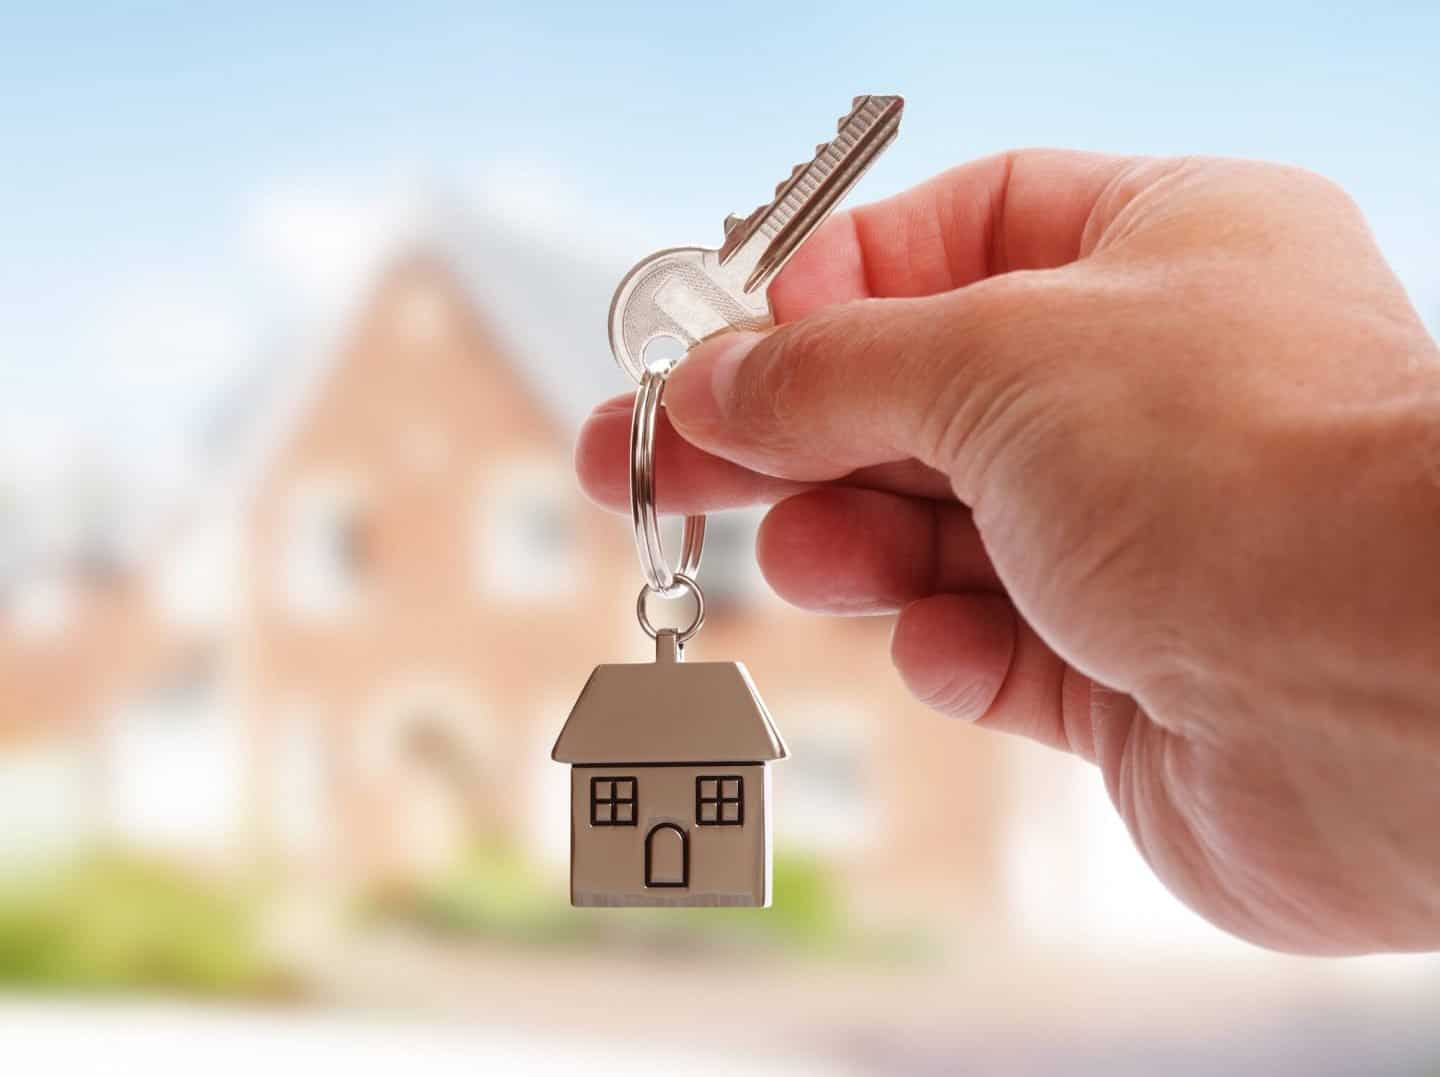 Red Flags to Look for When Buying a Home